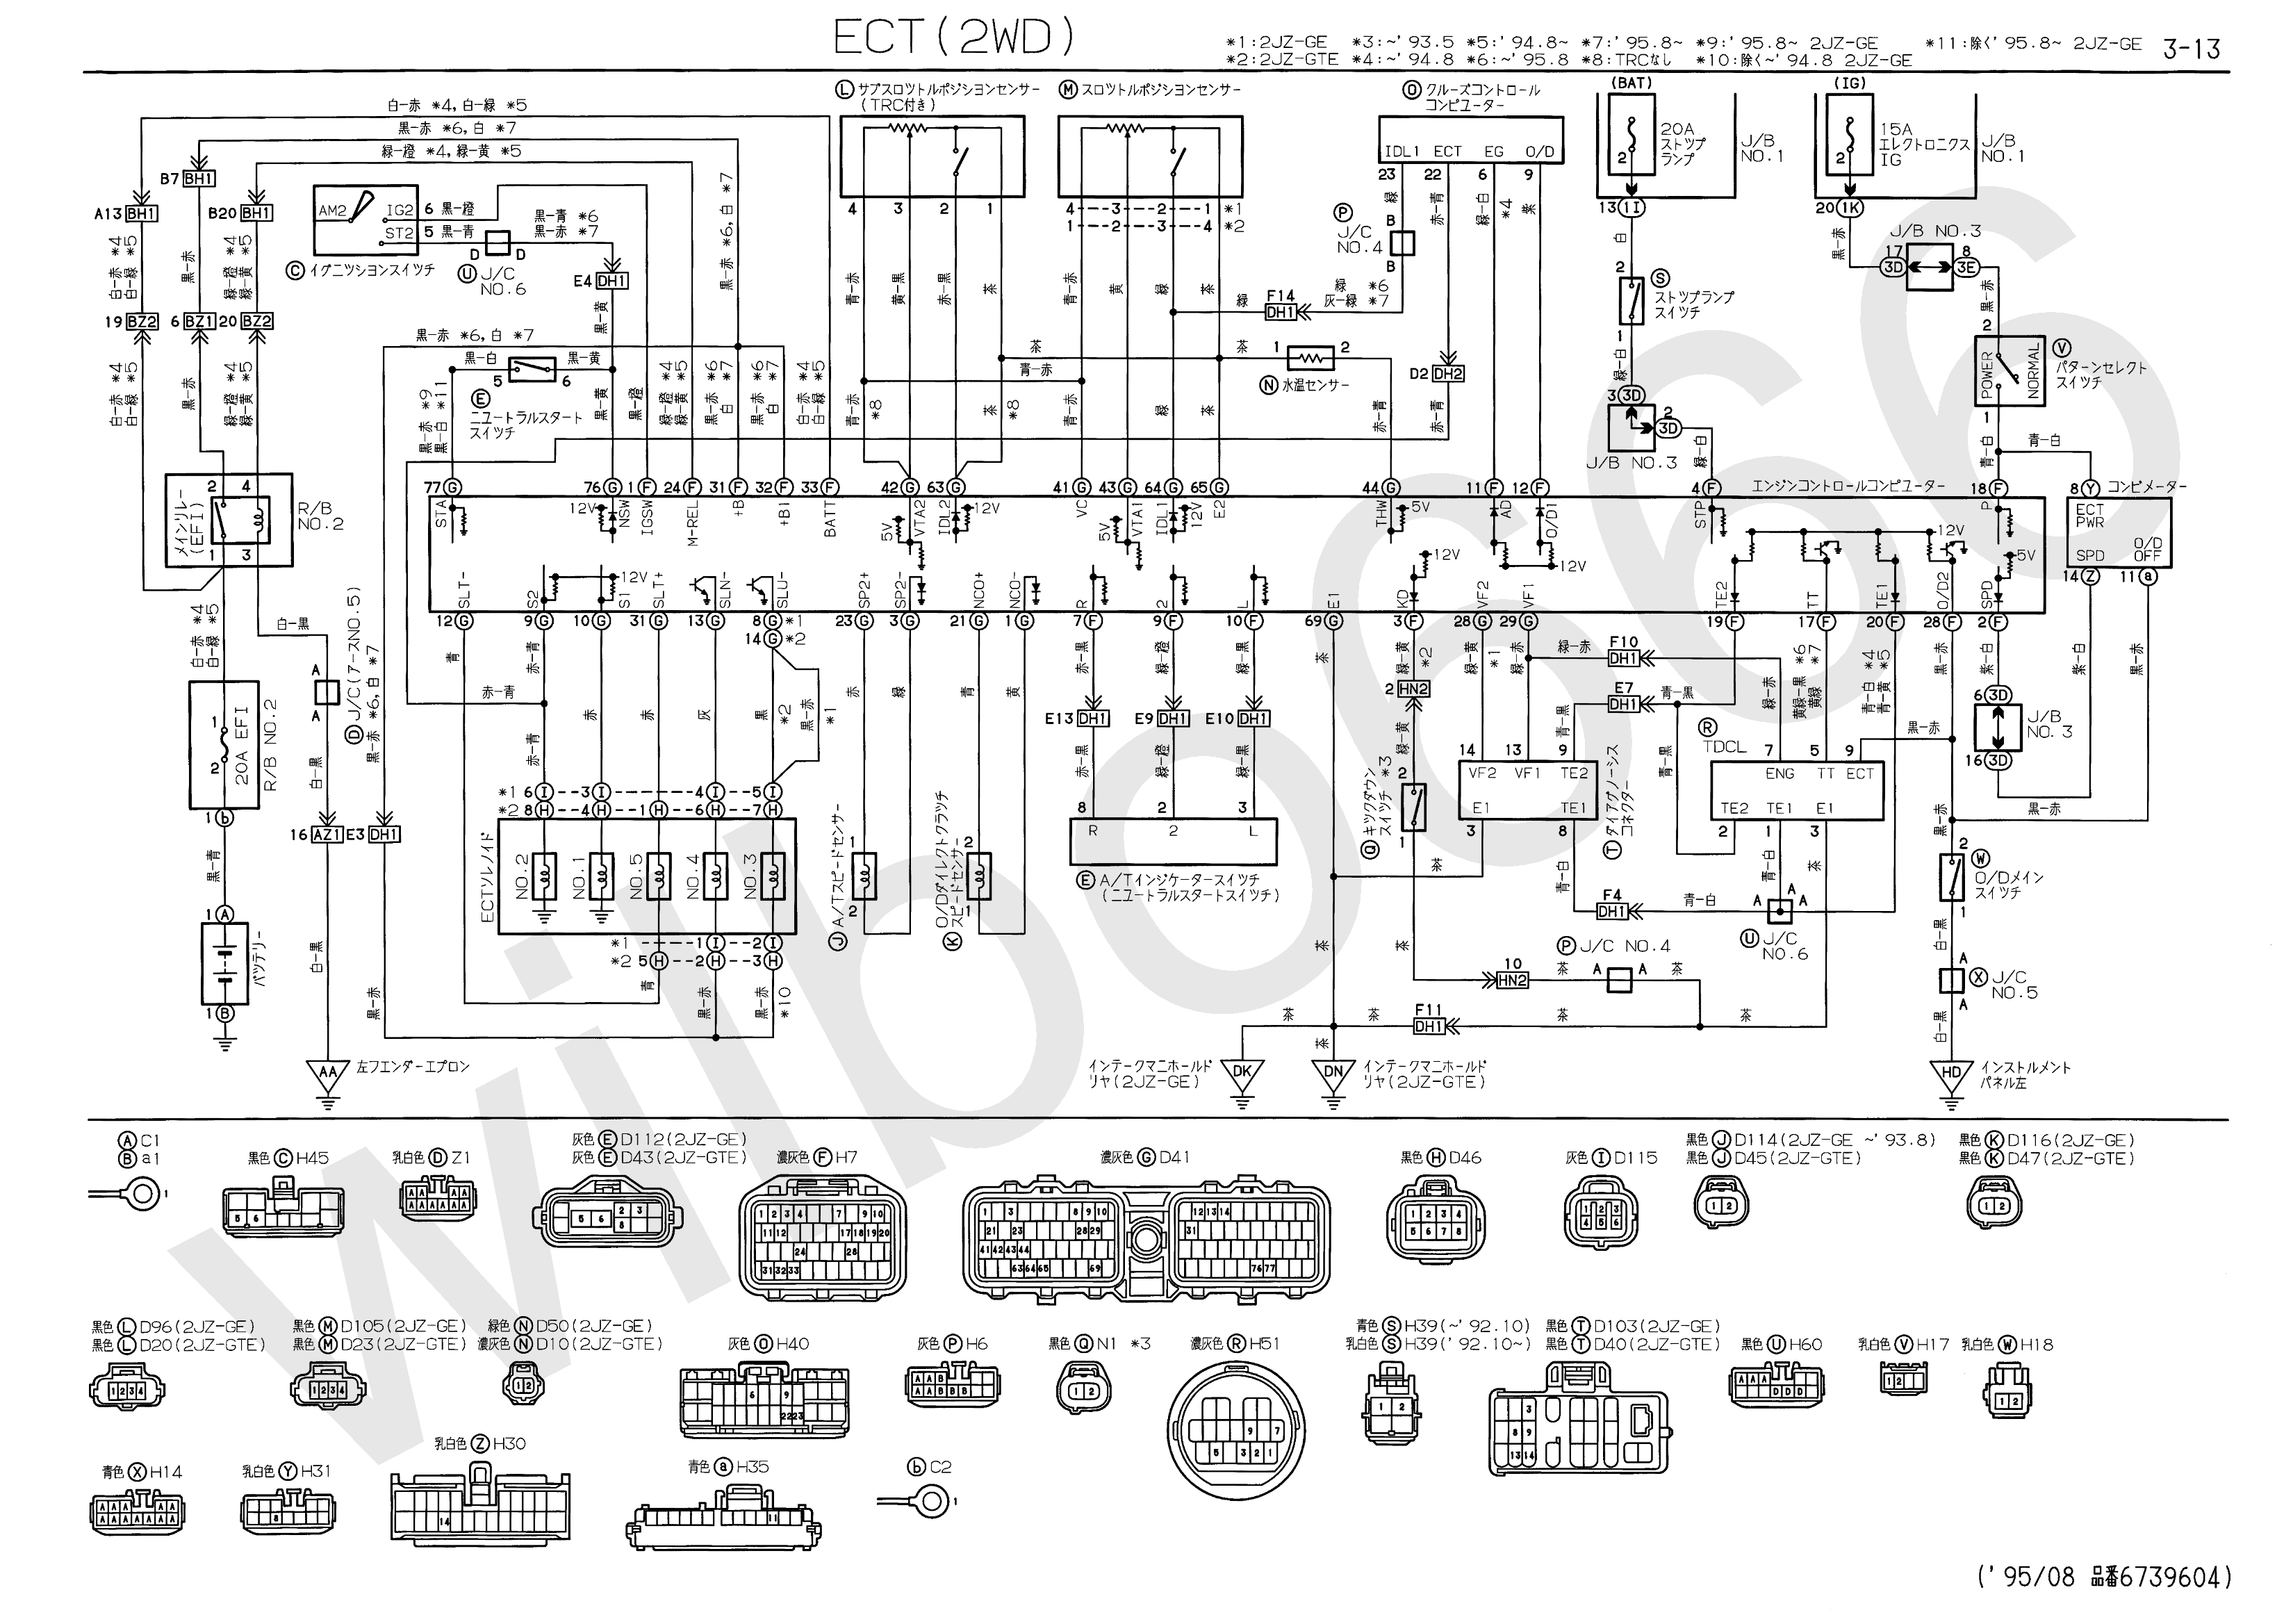 Infiniti Ac Wiring Diagrams Manual Guide Diagram Electrical Wilbo666 2jz Gte Jzs147 Aristo Engine Rh Pbworks Com Parts Sprinter